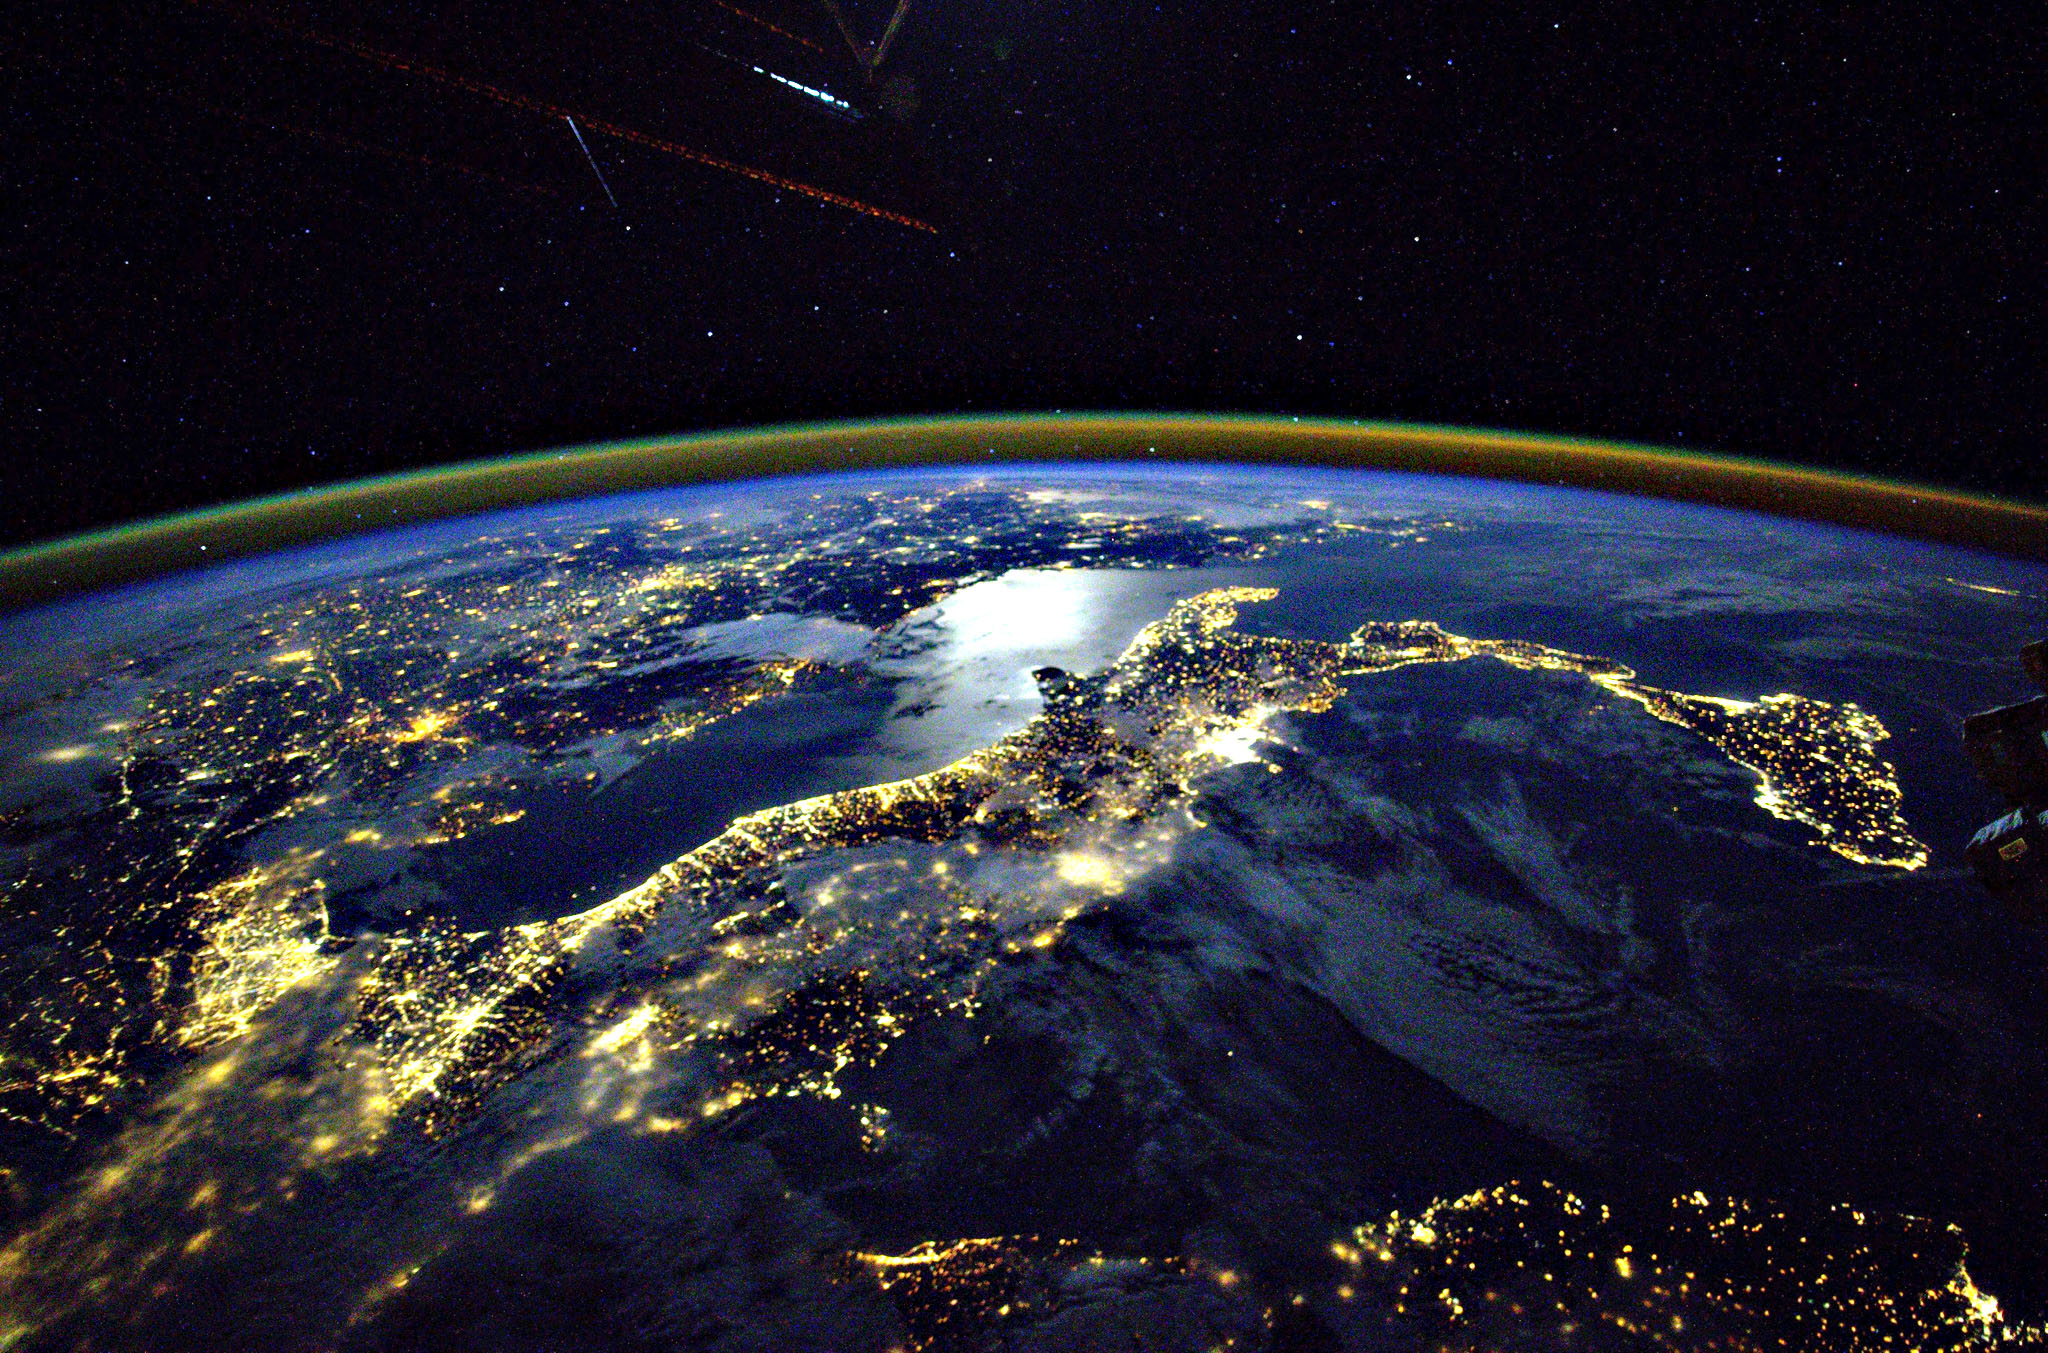 A view of Earth seen from the International Space Station (ISS) taken by current ISS crew member, Russian cosmonaut Mikhail Korniyenko